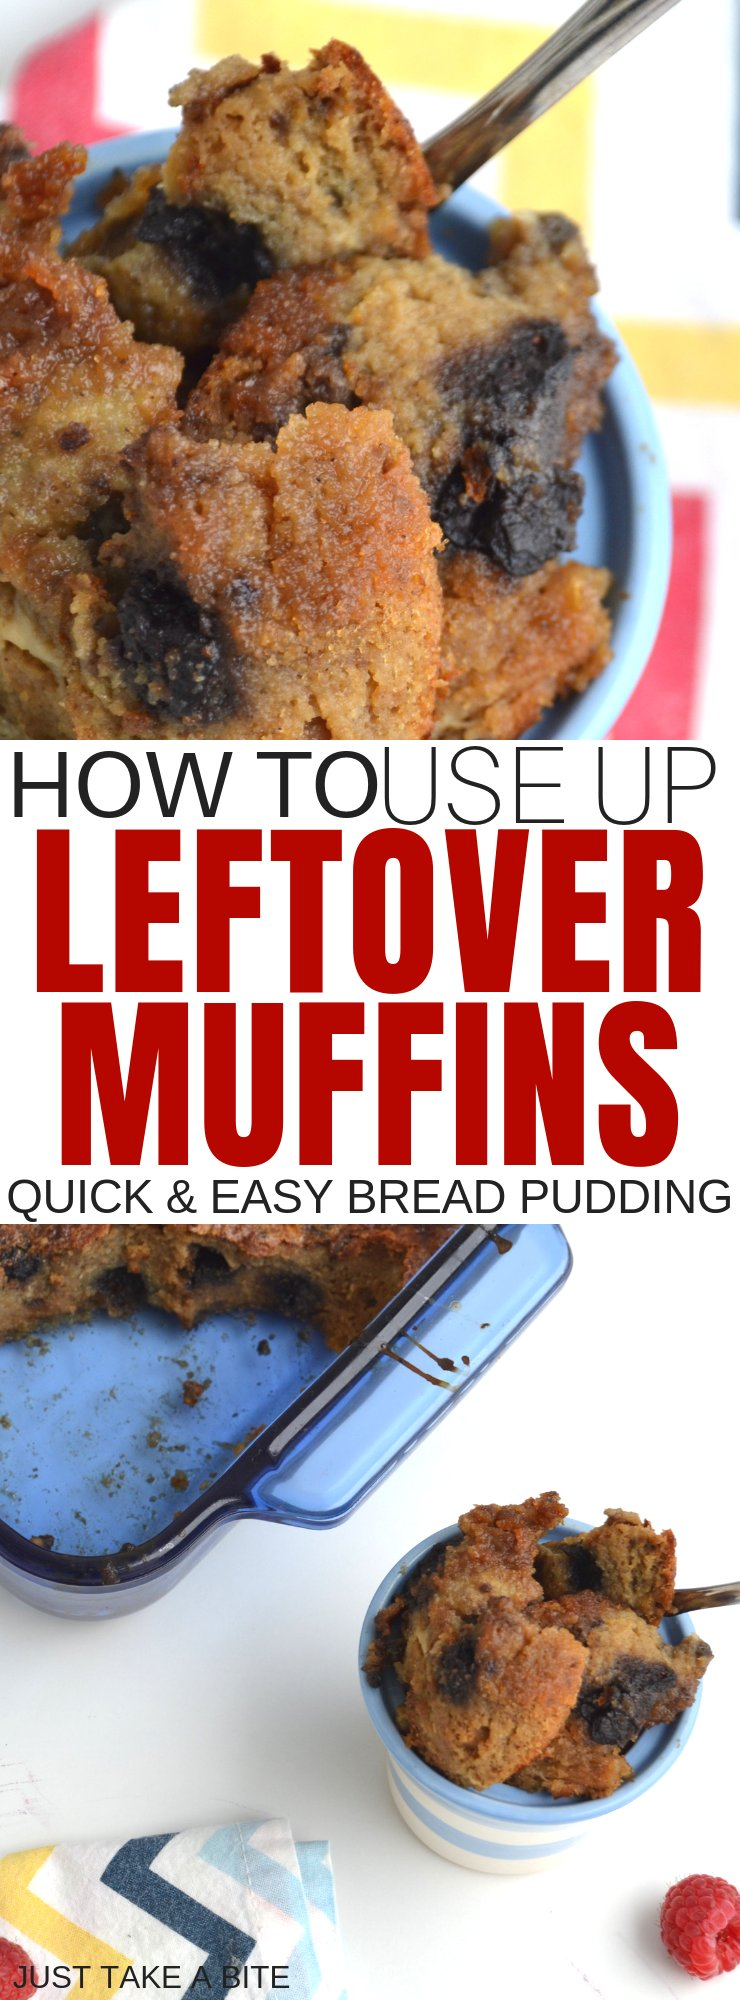 How to use up leftover muffins. Don't let those leftover muffins go to waste! Whether they are getting stale or are starting to crumble, muffins make amazing bread pudding. #leftovermuffins #simplefood #glutenfree #breadpudding